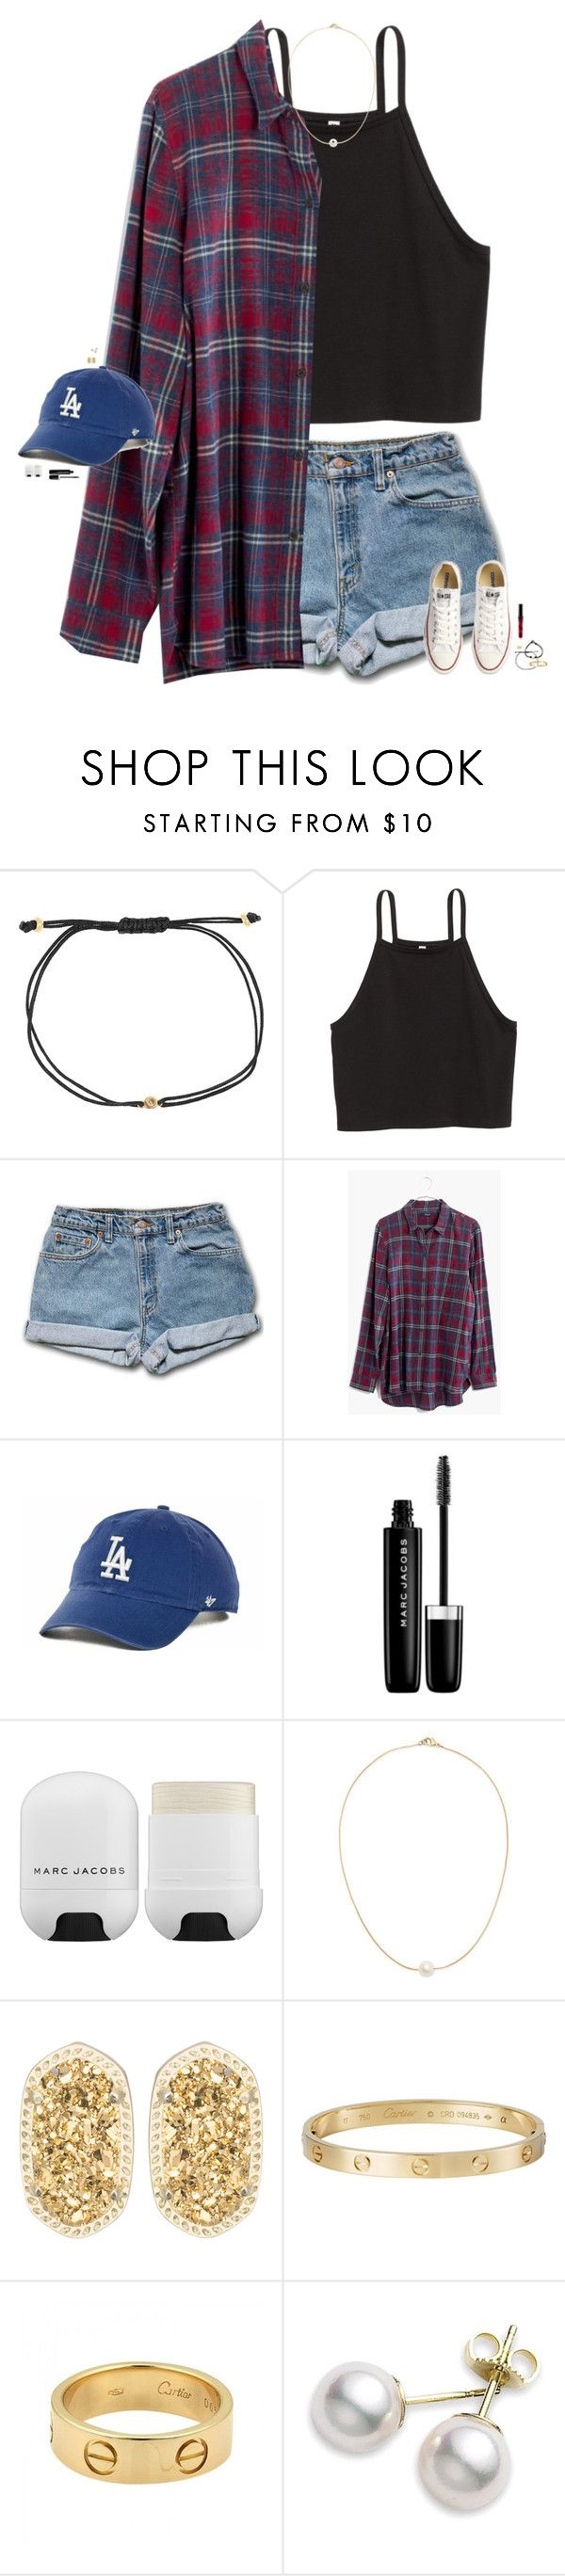 """""""inspo // @kthayer01"""" by maggie-prep ❤ liked on Polyvore featuring Melissa Joy Manning, Madewell, '47 Brand, Marc Jacobs, Sole Society, Kendra Scott, Cartier, Mikimoto, Converse and maggiesbestsets"""